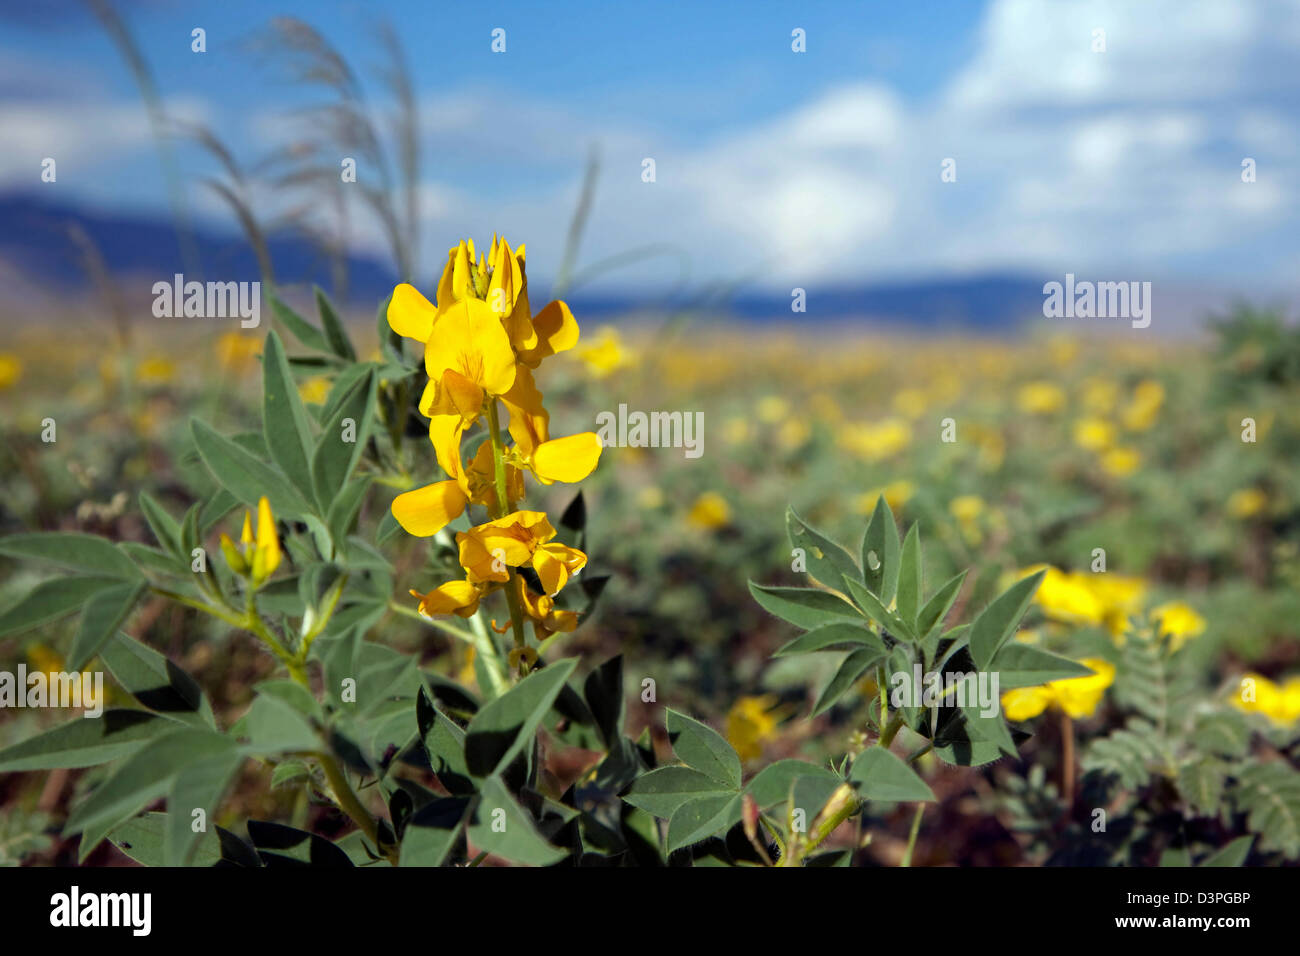 Yellow flowers blooming in the Sossusvlei, Namib Desert, Namib-Naukluft National Park, Namibia, South Africa - Stock Image